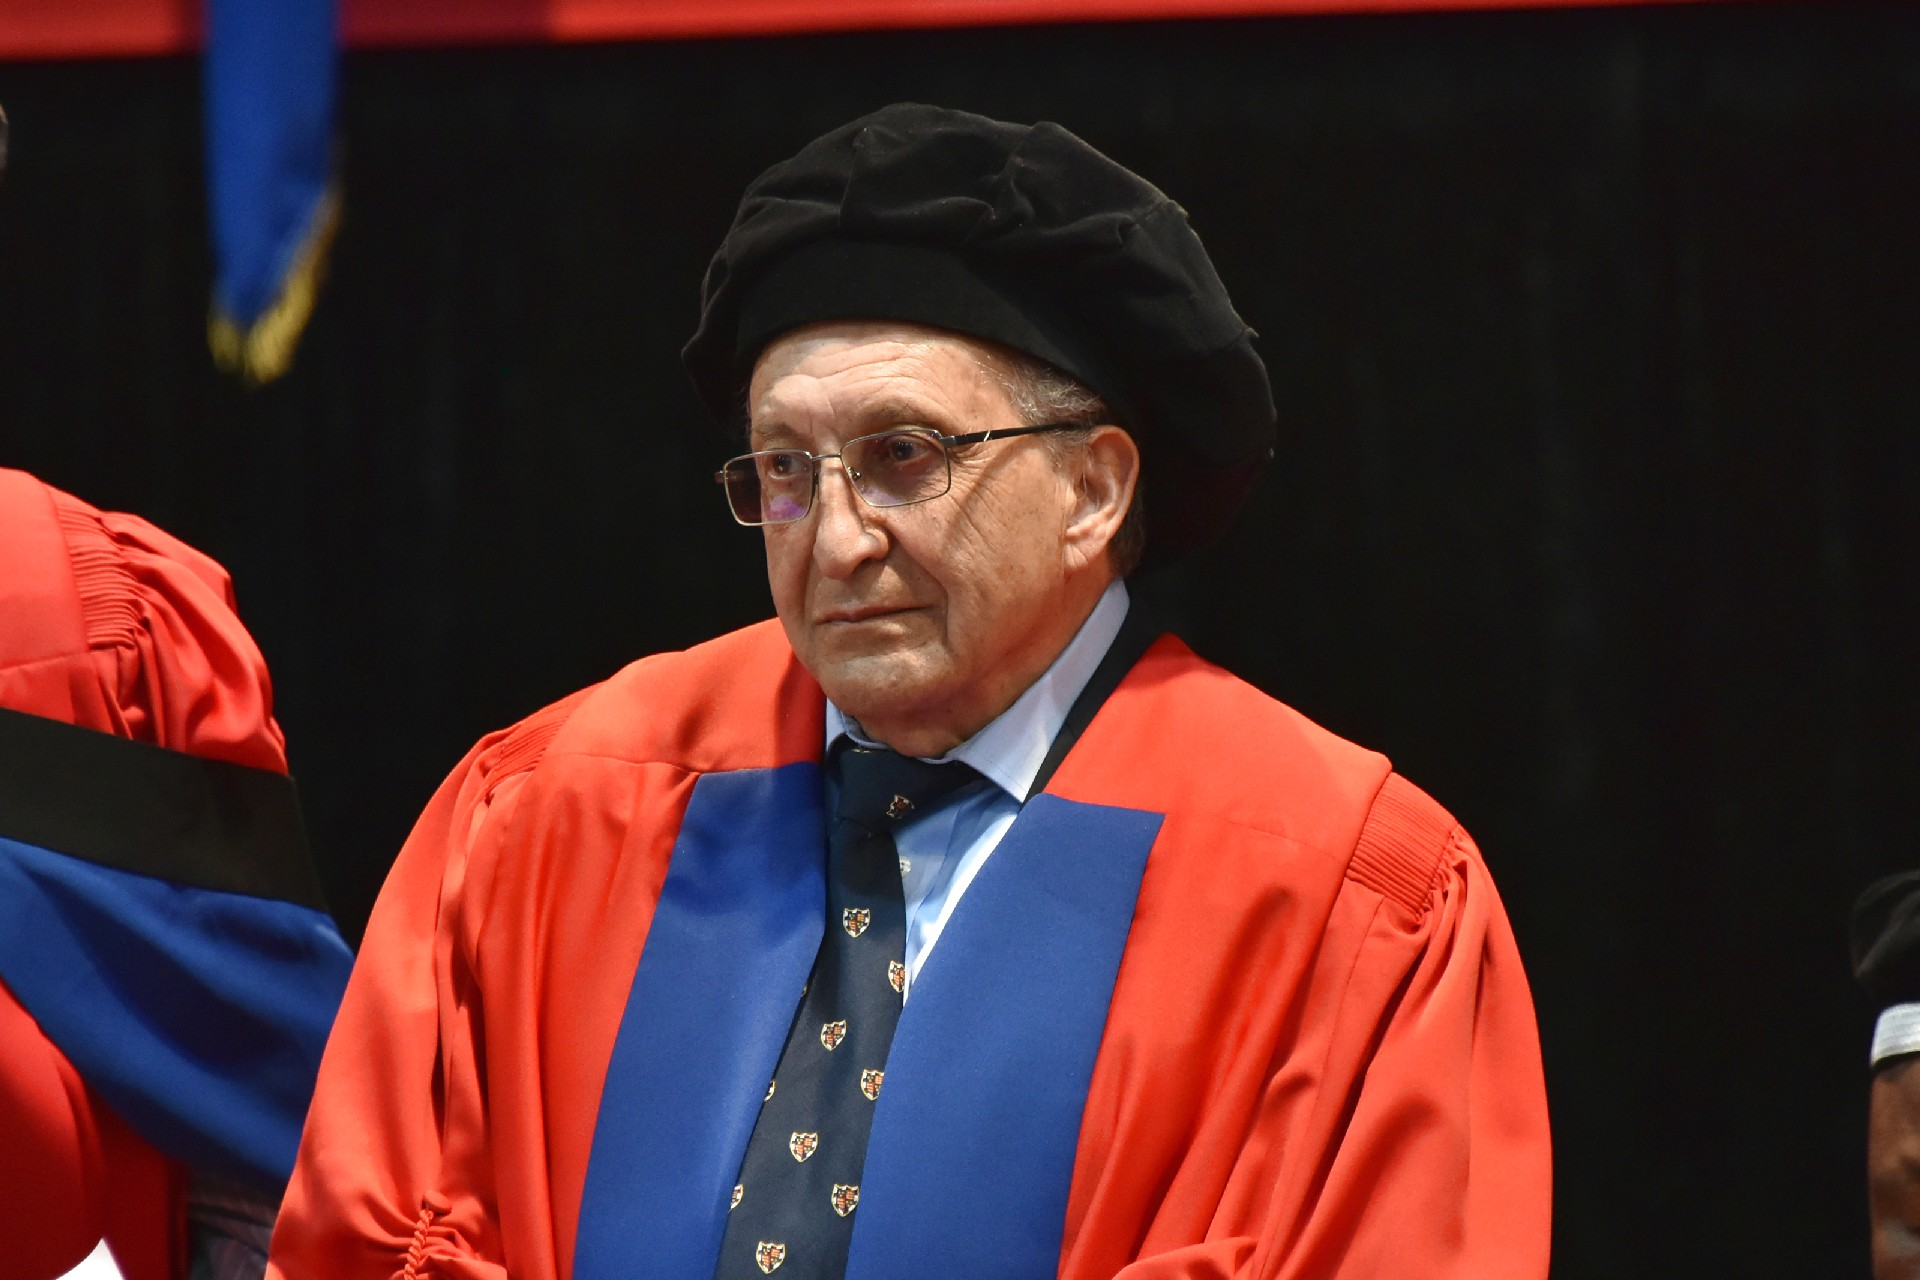 Dr Bernard Fanaroff, recipient of a Doctor of Science honorary degree